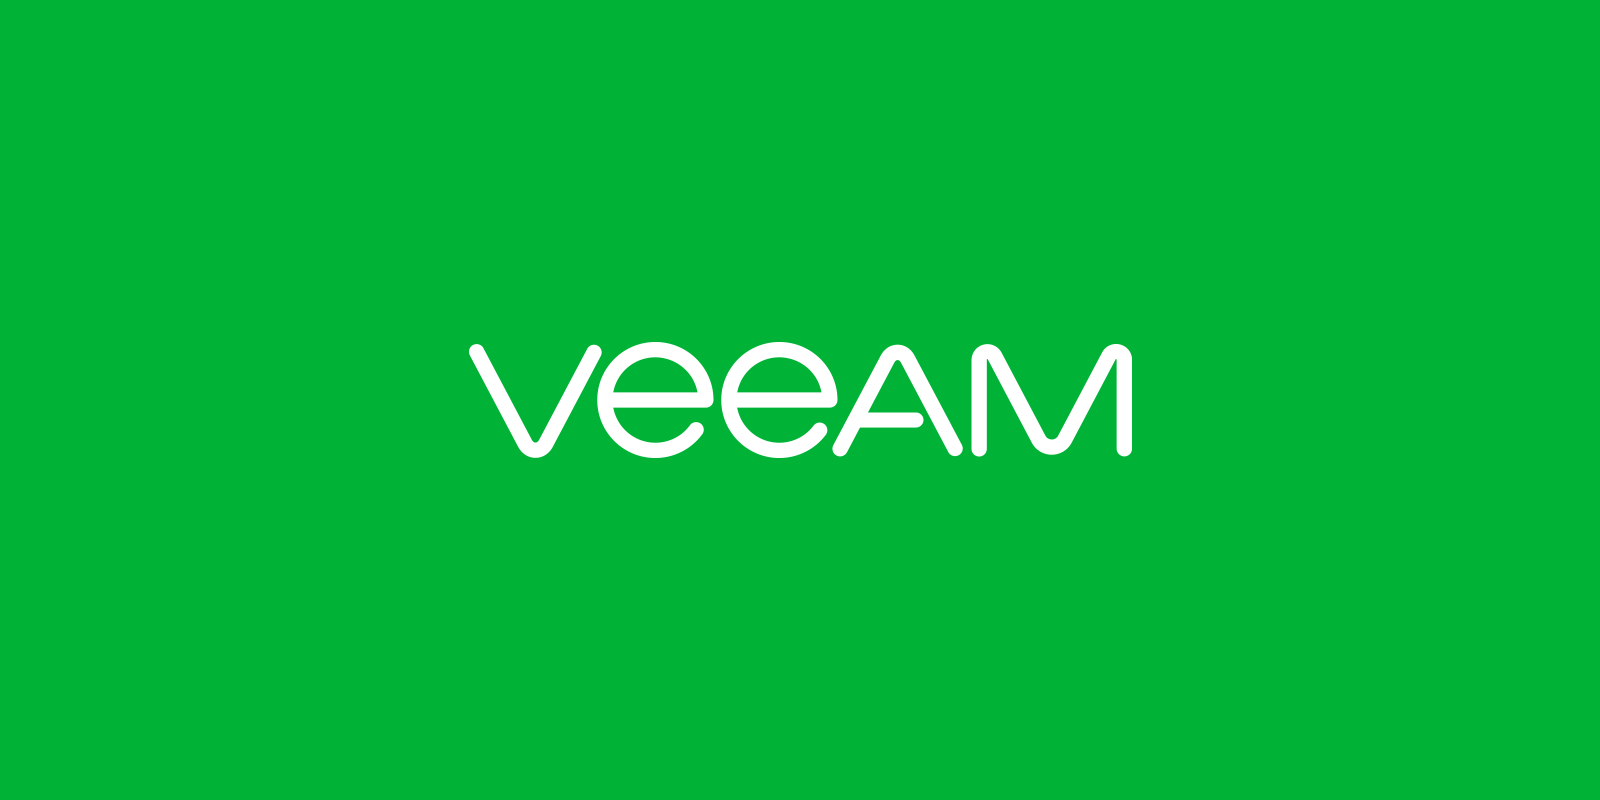 Veeam te invita a VMWorld 2019